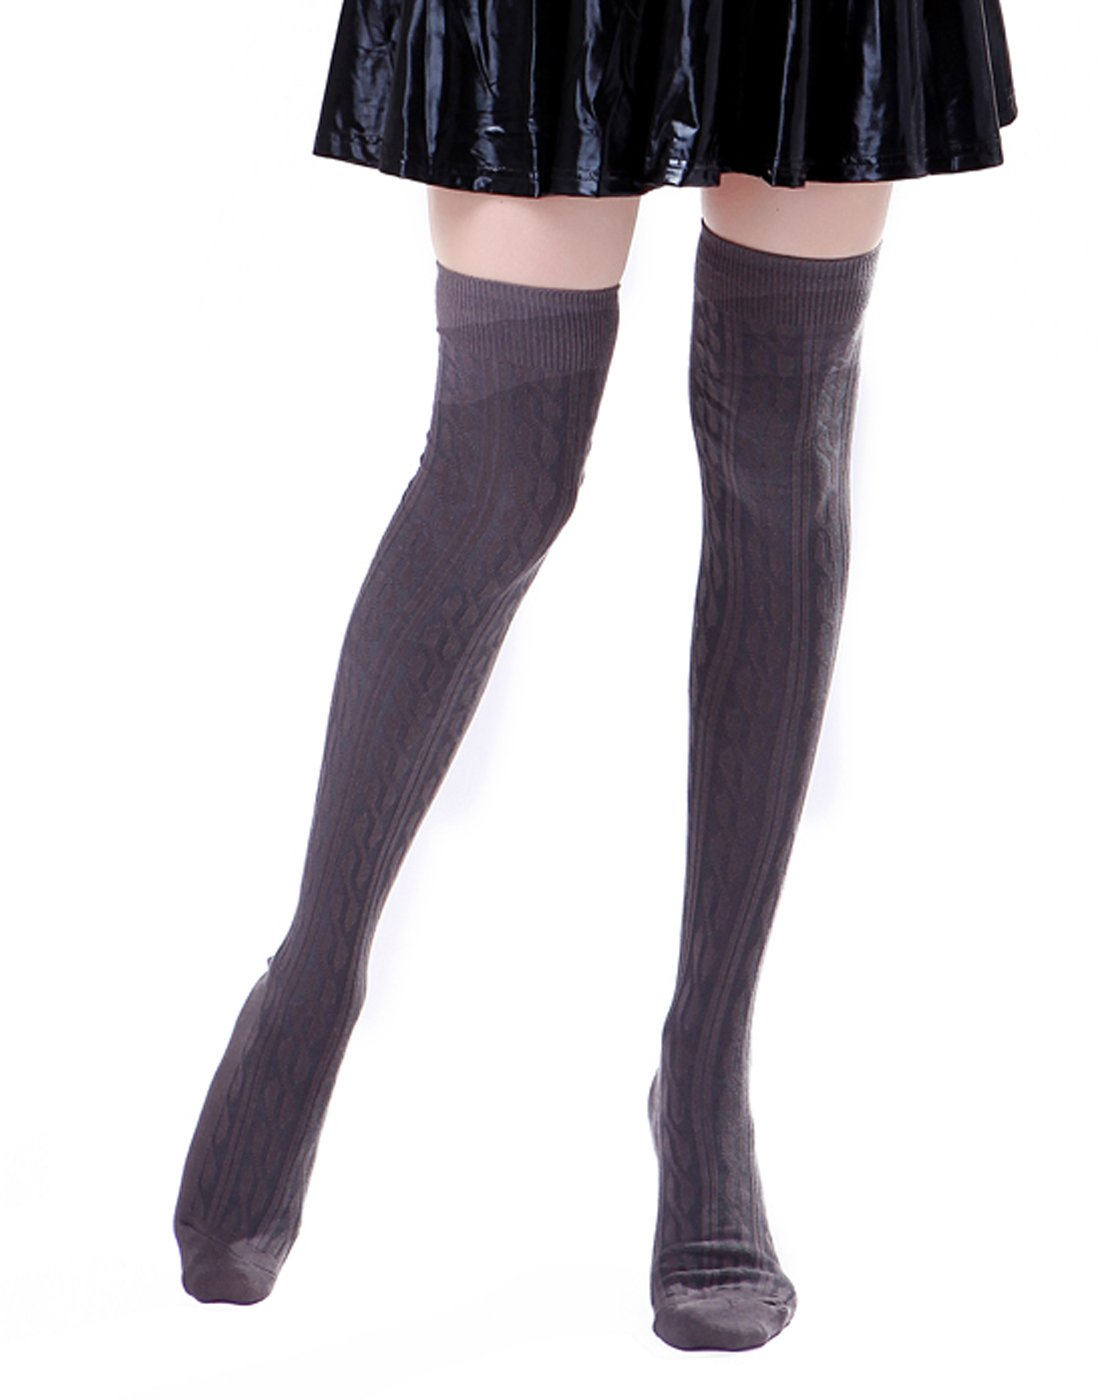 HDE Women's Stockings Solid Color Opaque Cable Knit Over The Knee Socks HDE-P229-2014